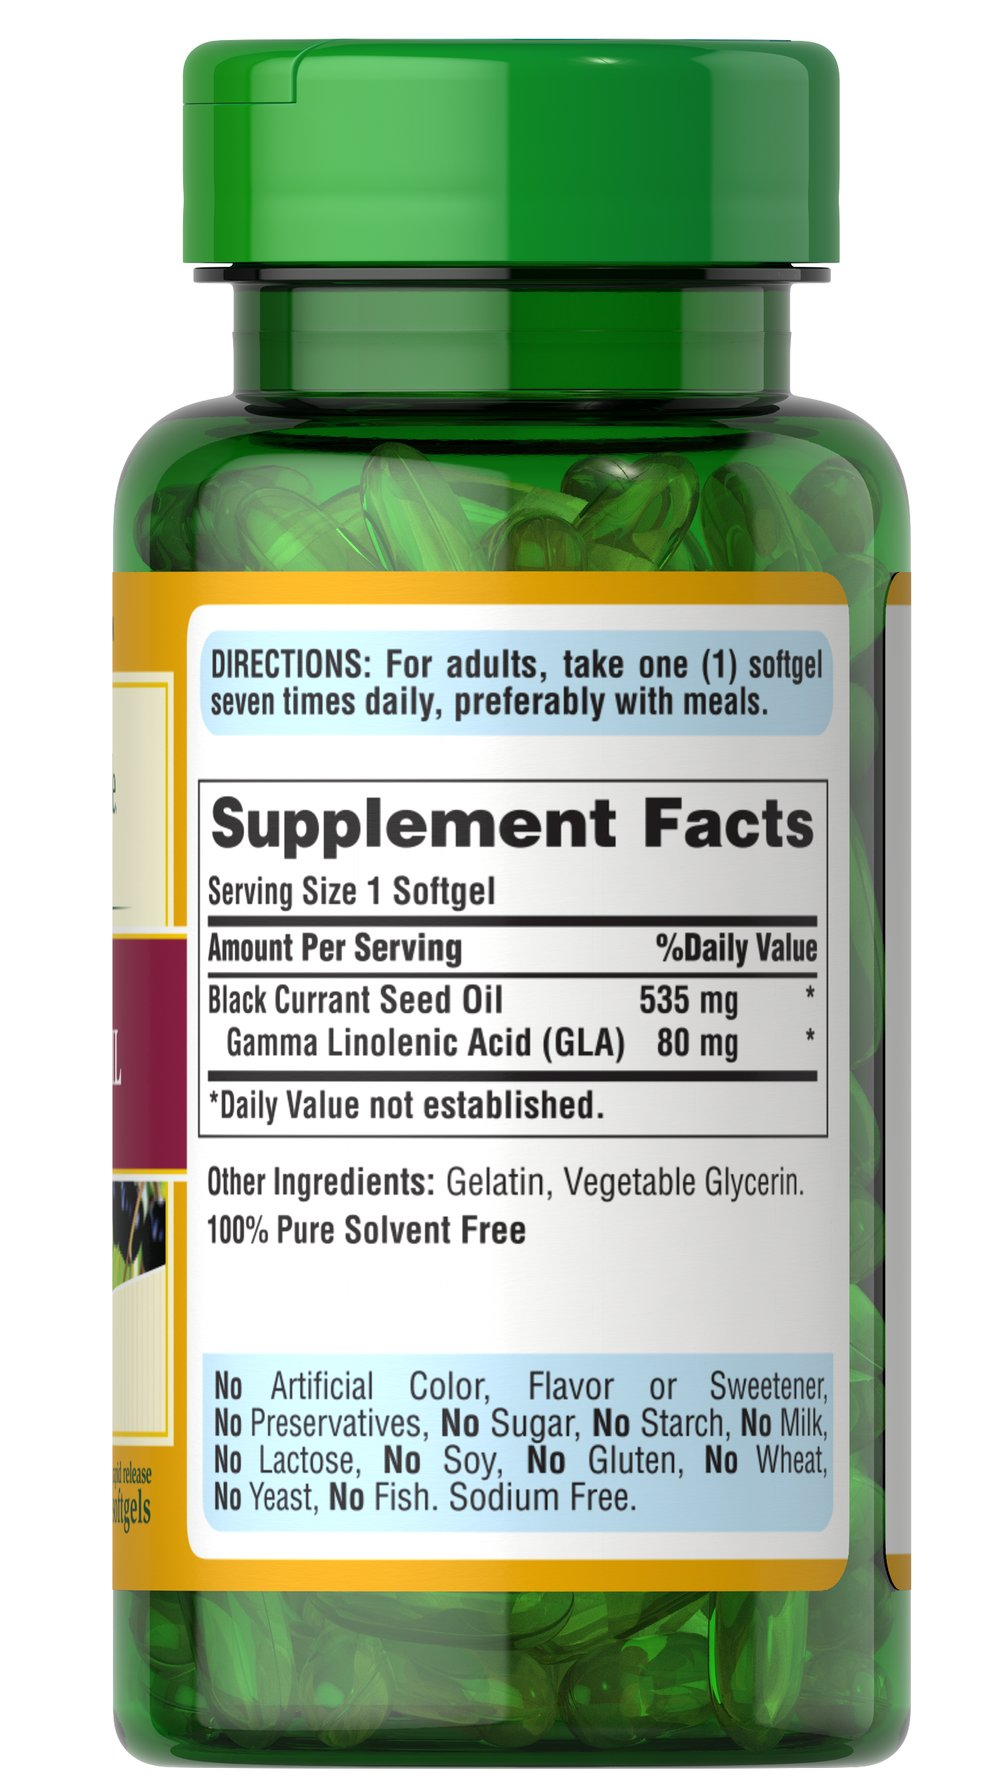 Black Currant Oil 535 mg Thumbnail Alternate Bottle View